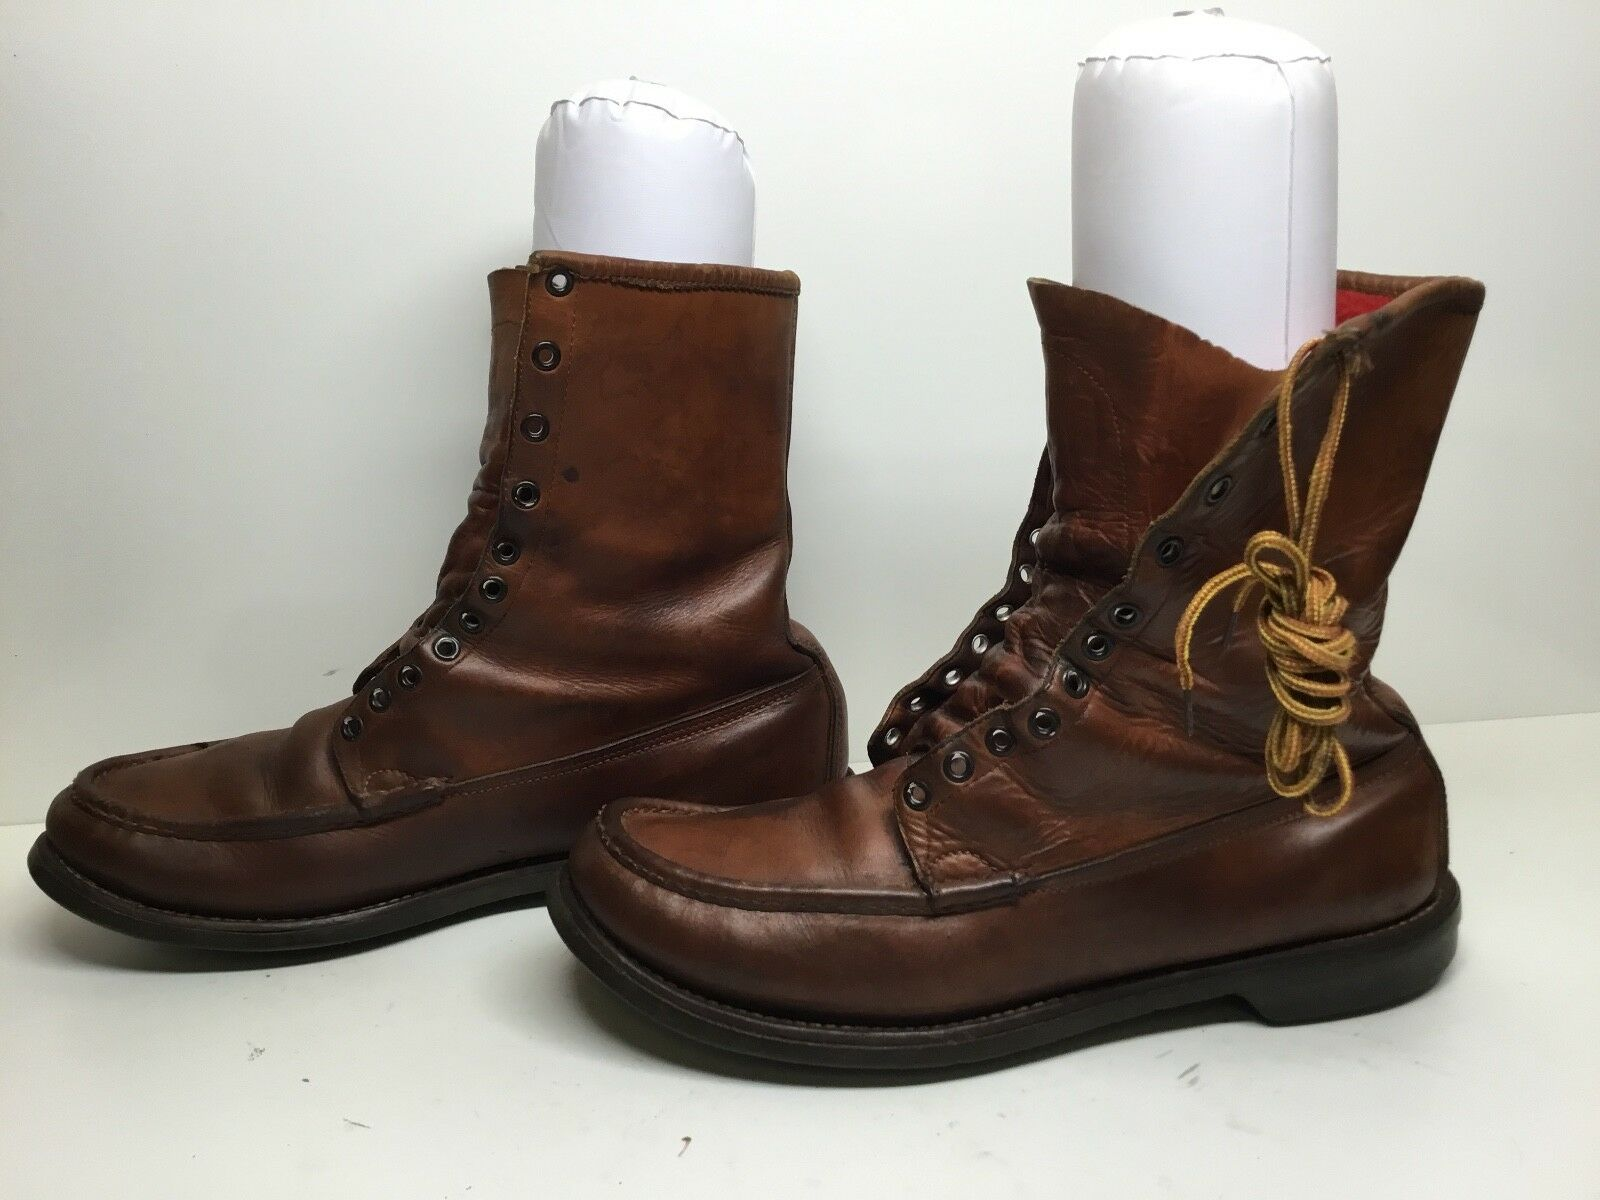 ROCKY Steel Toe, Gore-Tex Brown Leather Western Work Boots Men's Size 9 M